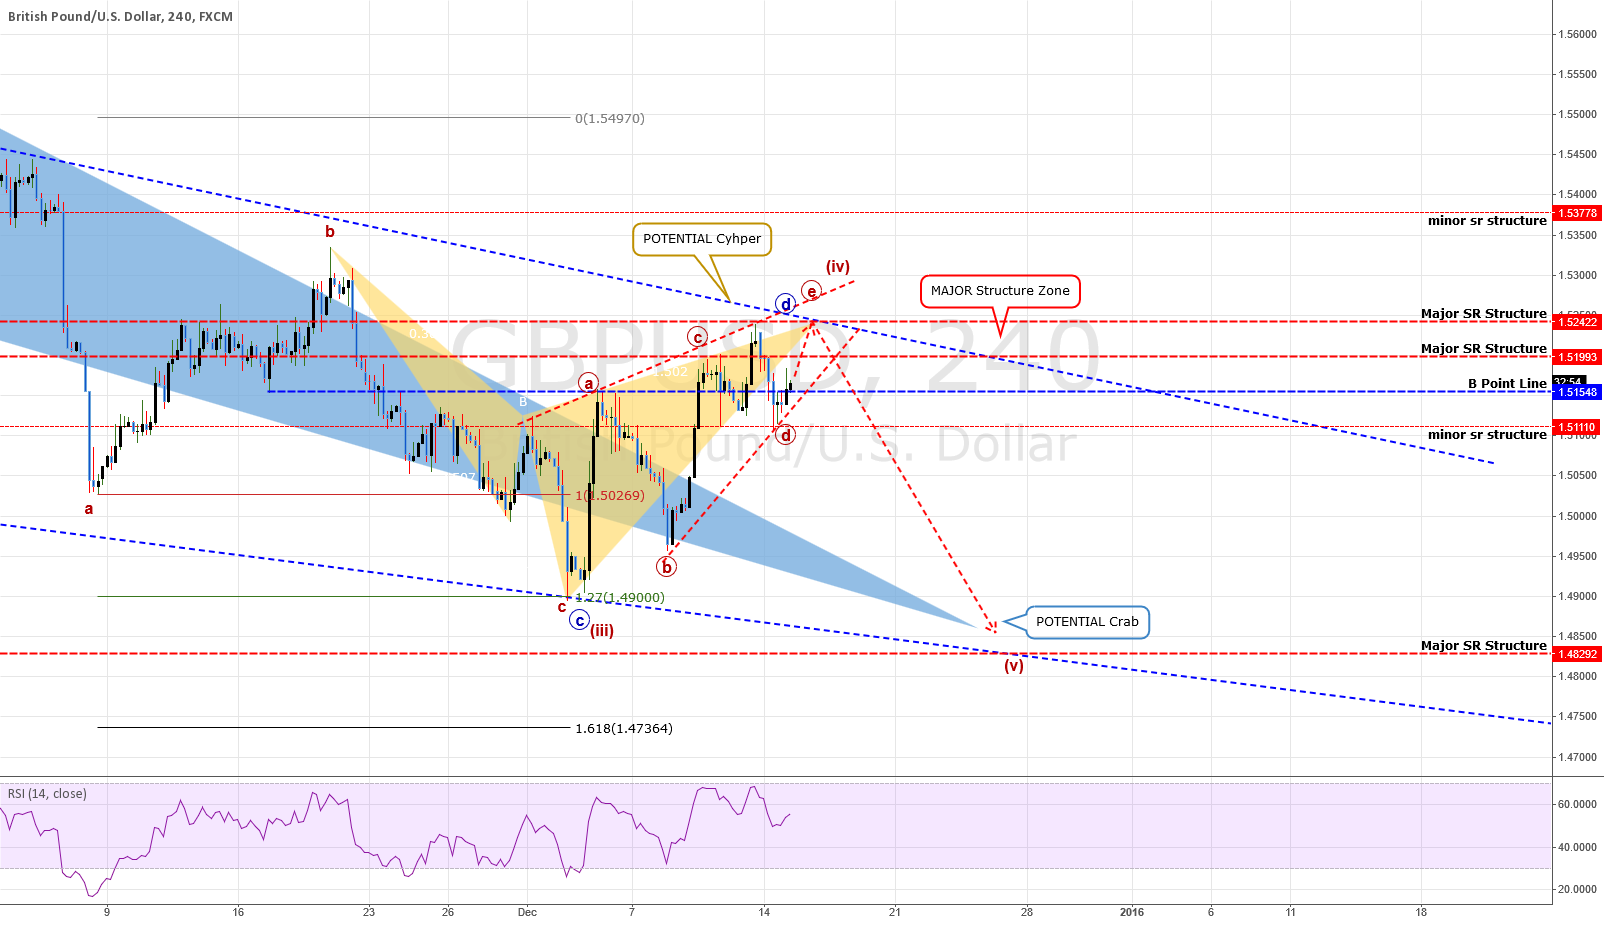 ANALYSIS: GBPUSD: Looking For An Ending + An Apology